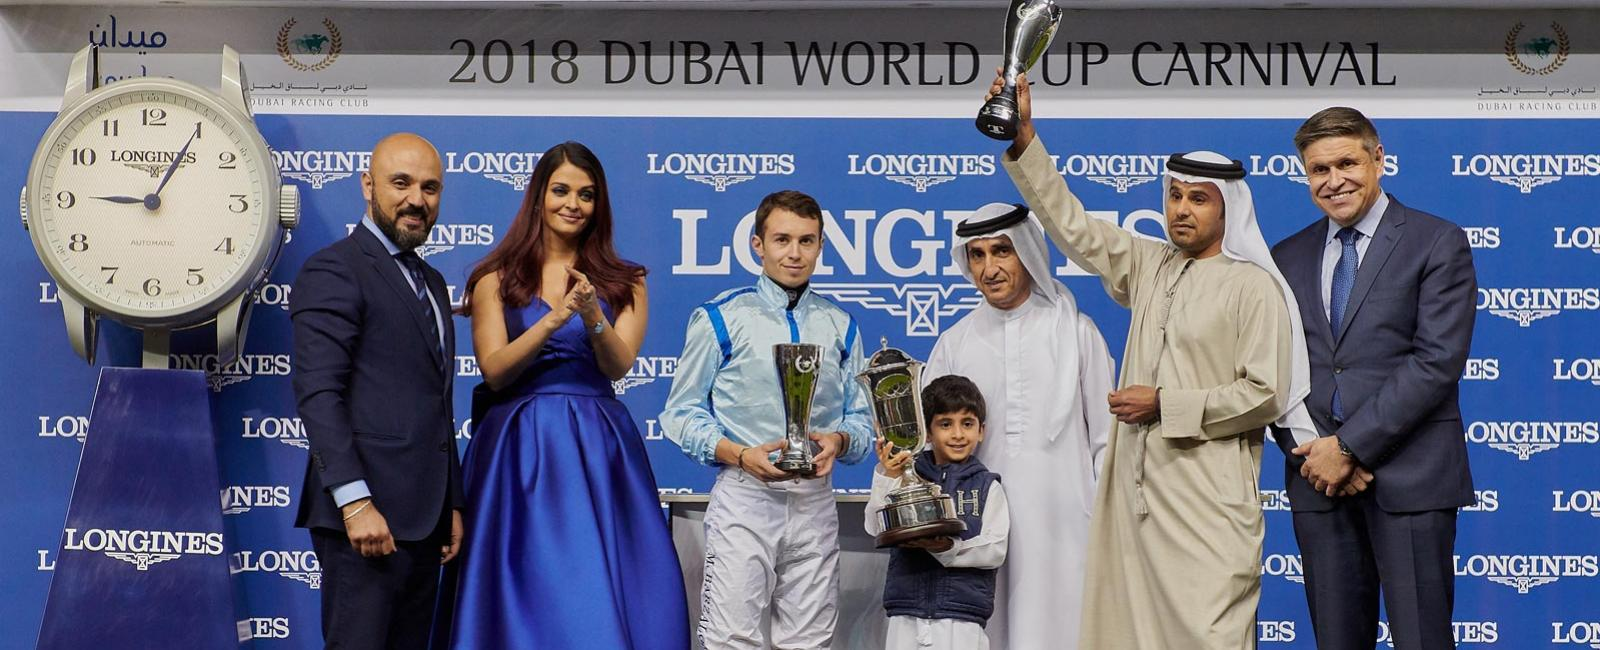 Dubai World Cup Carnival Opening night & Races Presented by Longines; Dubai